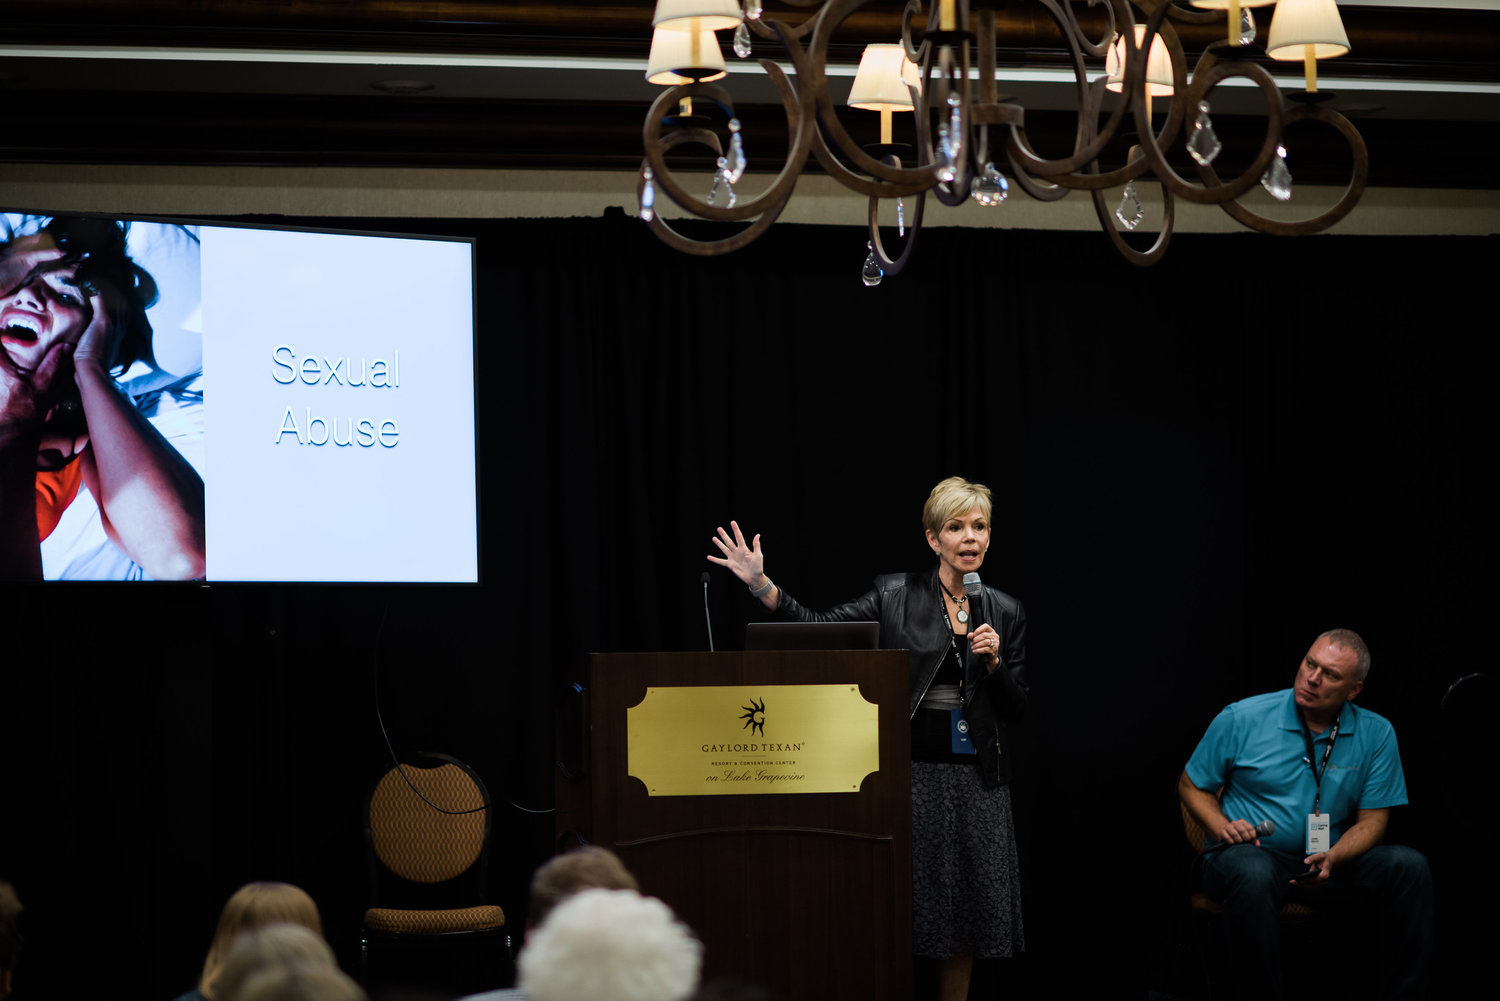 Leslie Vernick speaks as Chris Moles looks on during a breakout session on domestic violence at the 2019 National Conference of the Ethics and Religious Liberty Commission of the Southern Baptist Convention. The Caring Well conference ran from October 3-5 in Grapevine, Tx. (Karen Race Photography 2019)